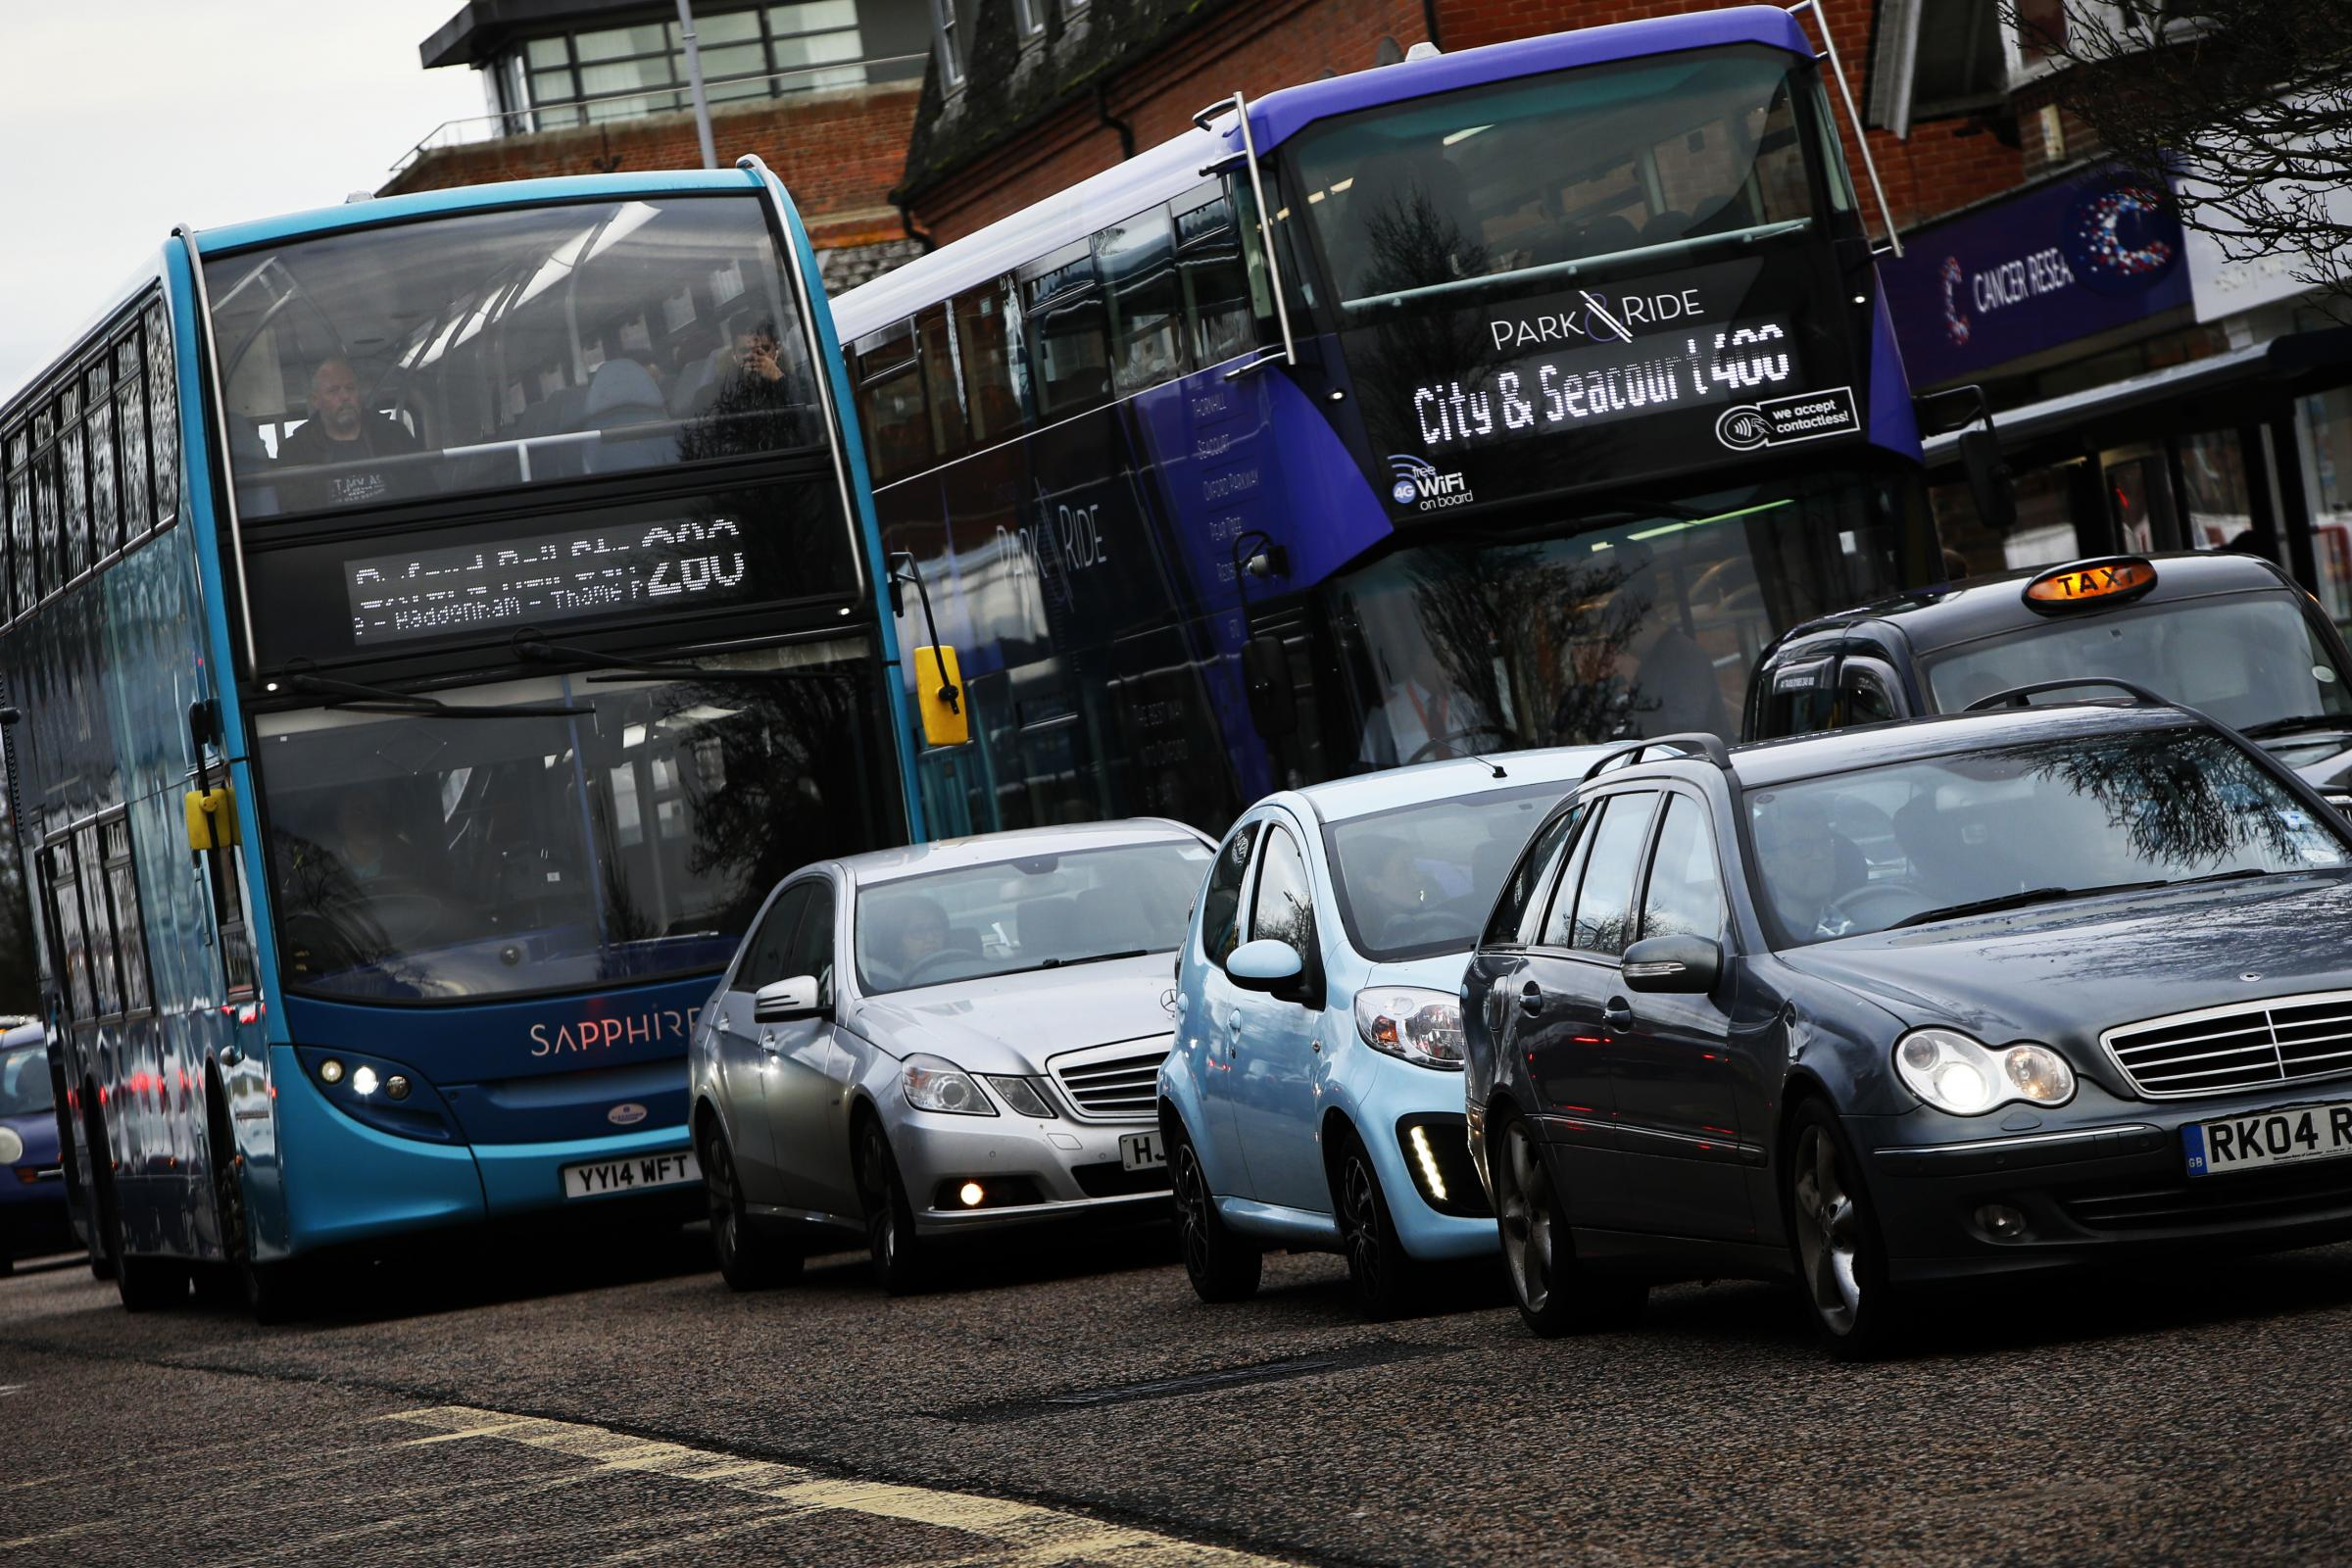 Perfect storm' causes massive congestion - is it time for